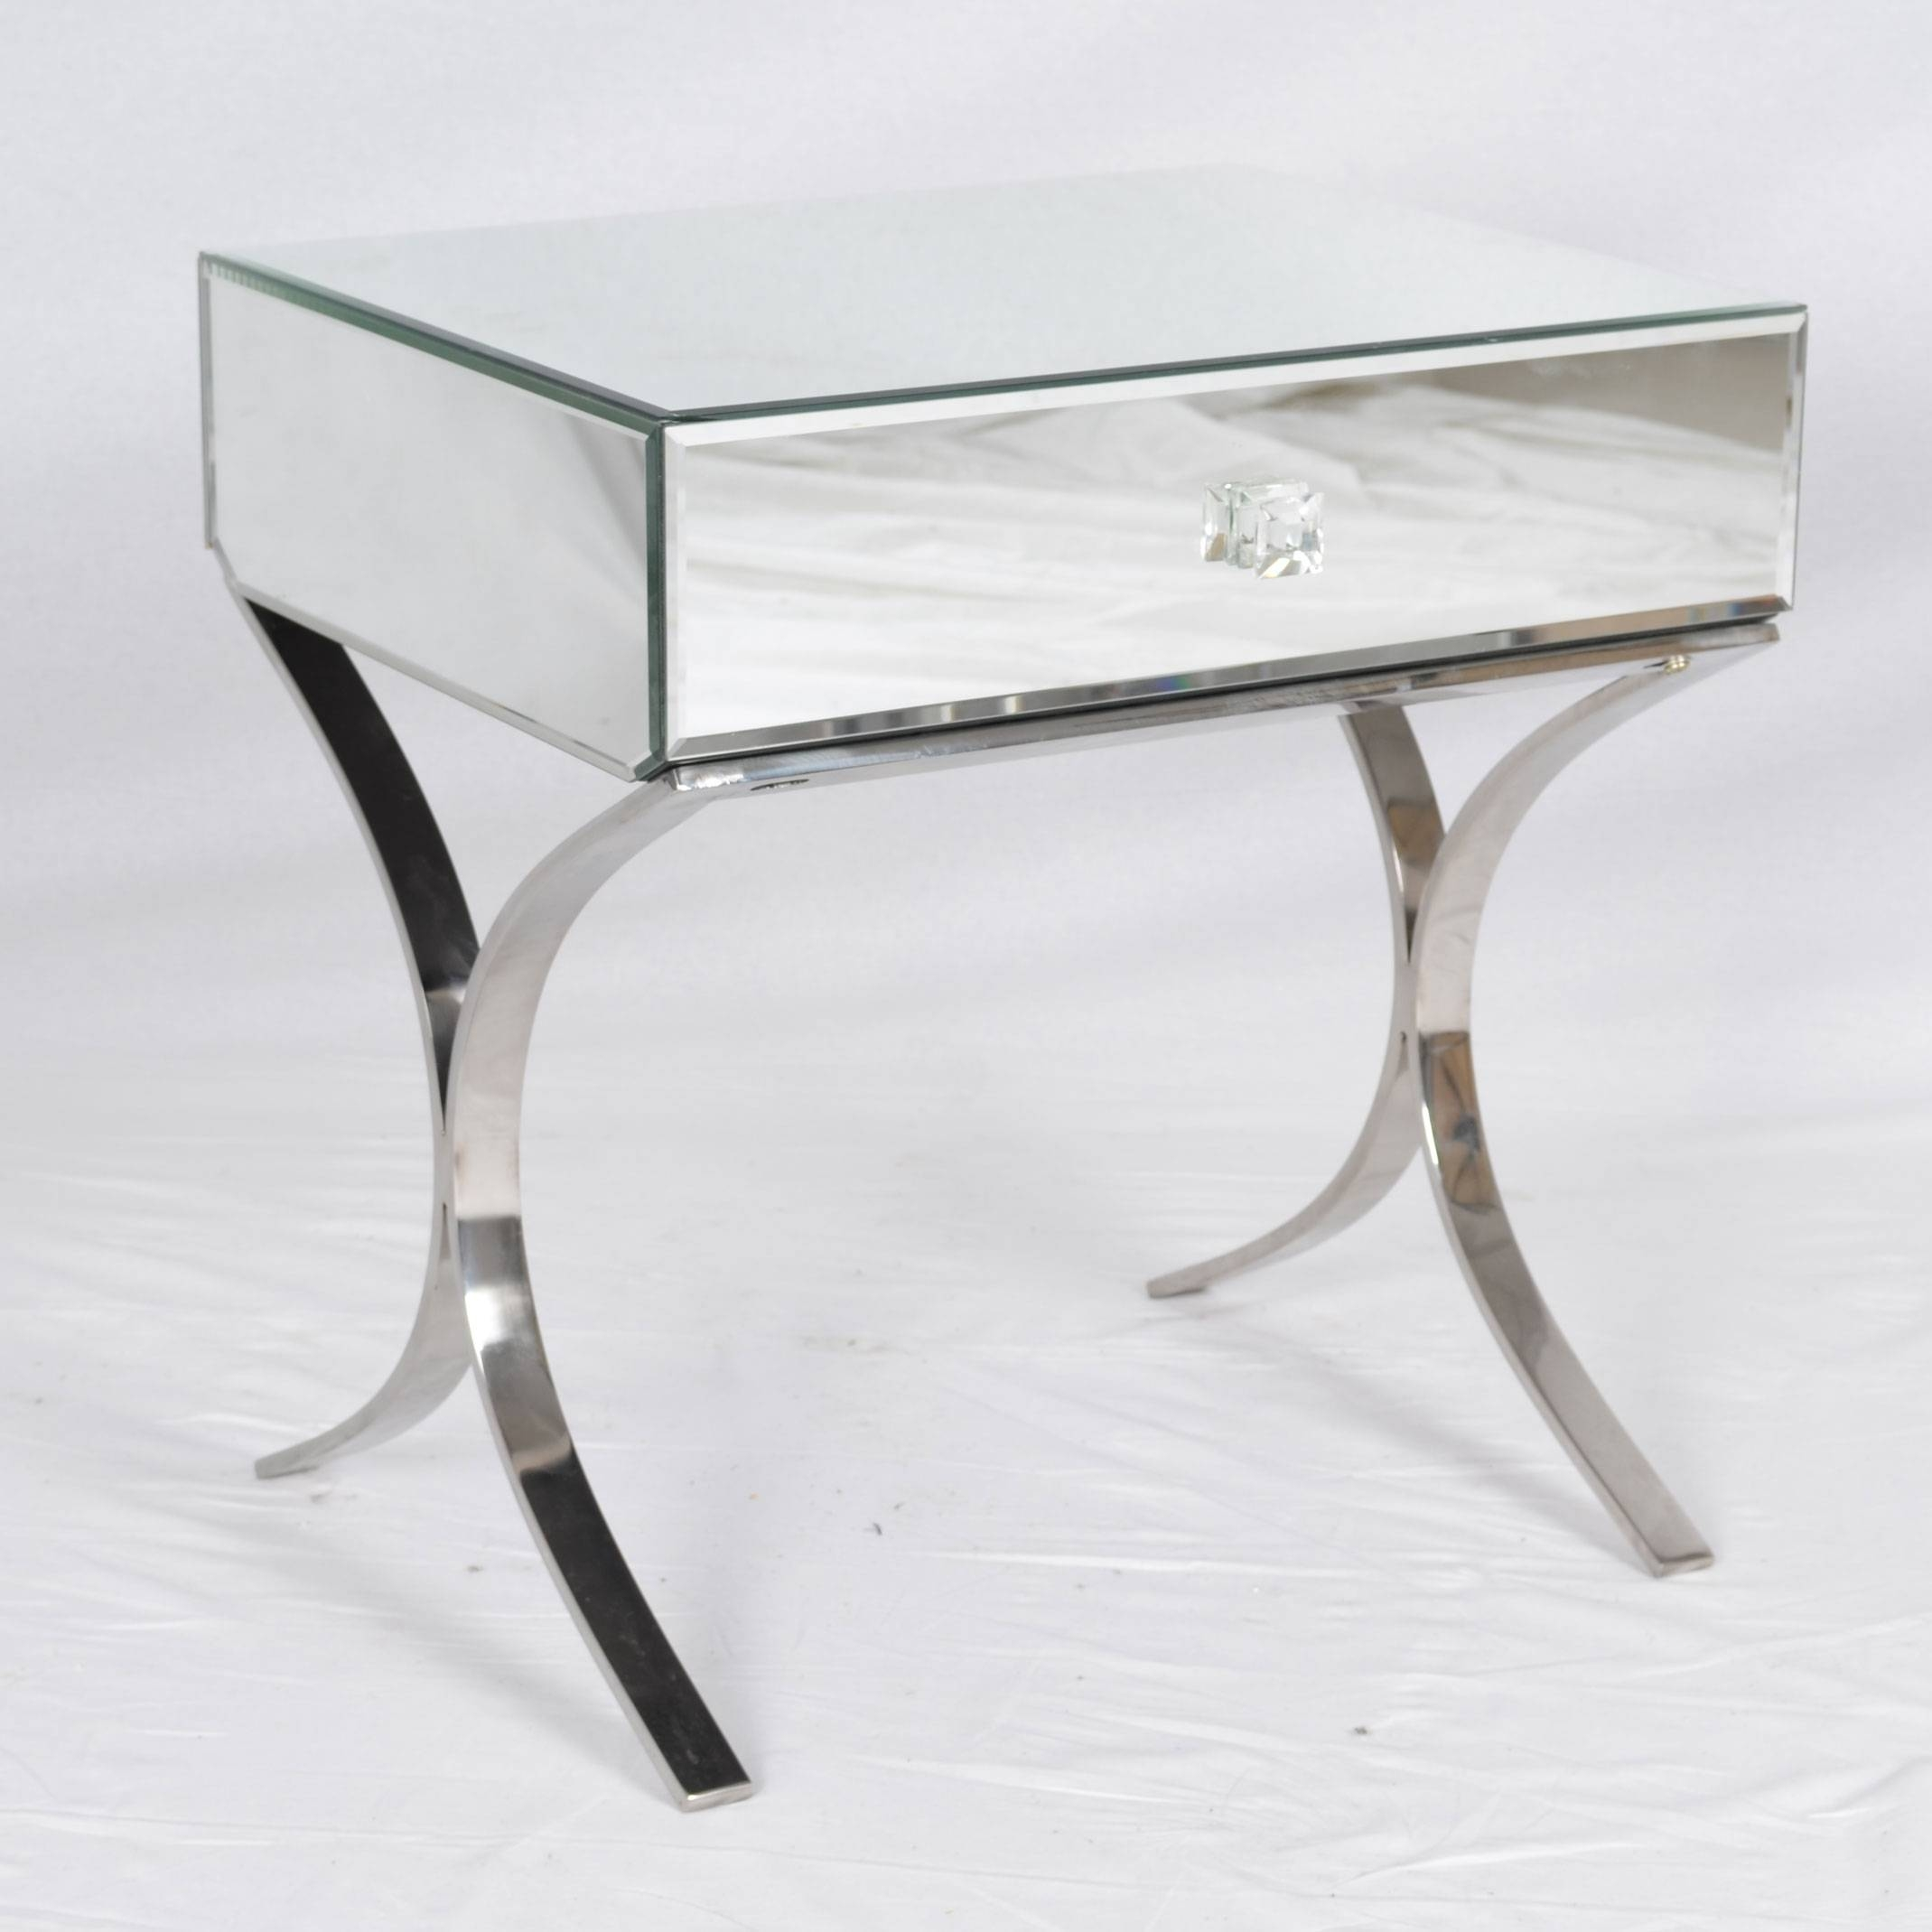 Small Table Mirror With Stand | Vanity And Nightstand Decoration throughout Small Table Mirrors (Image 18 of 25)